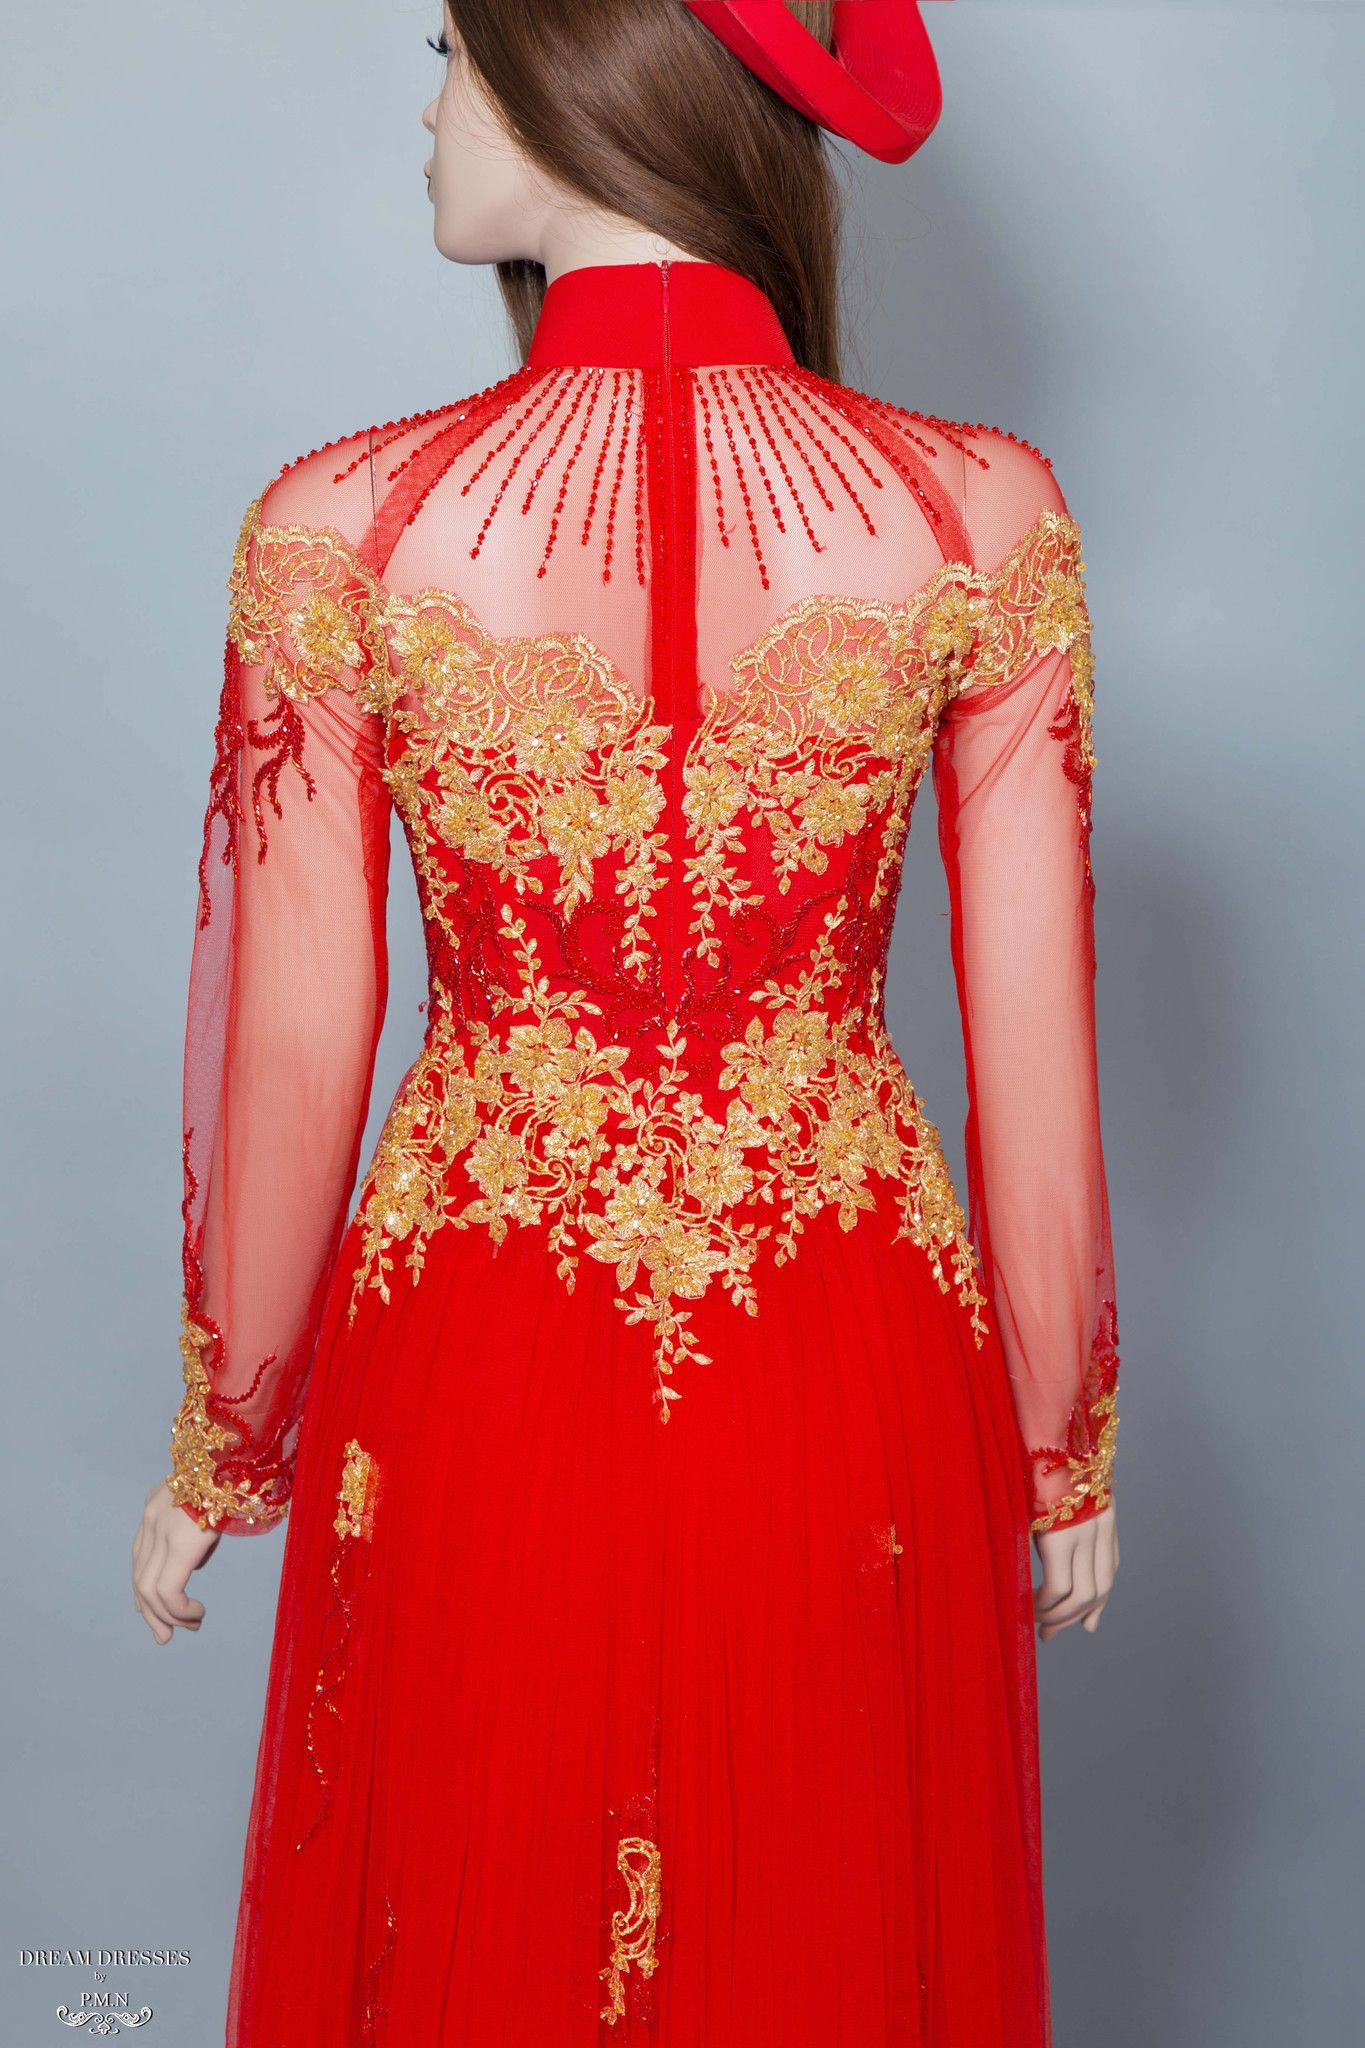 Red and Gold Ao Dai Vietnamese Bridal Dress with